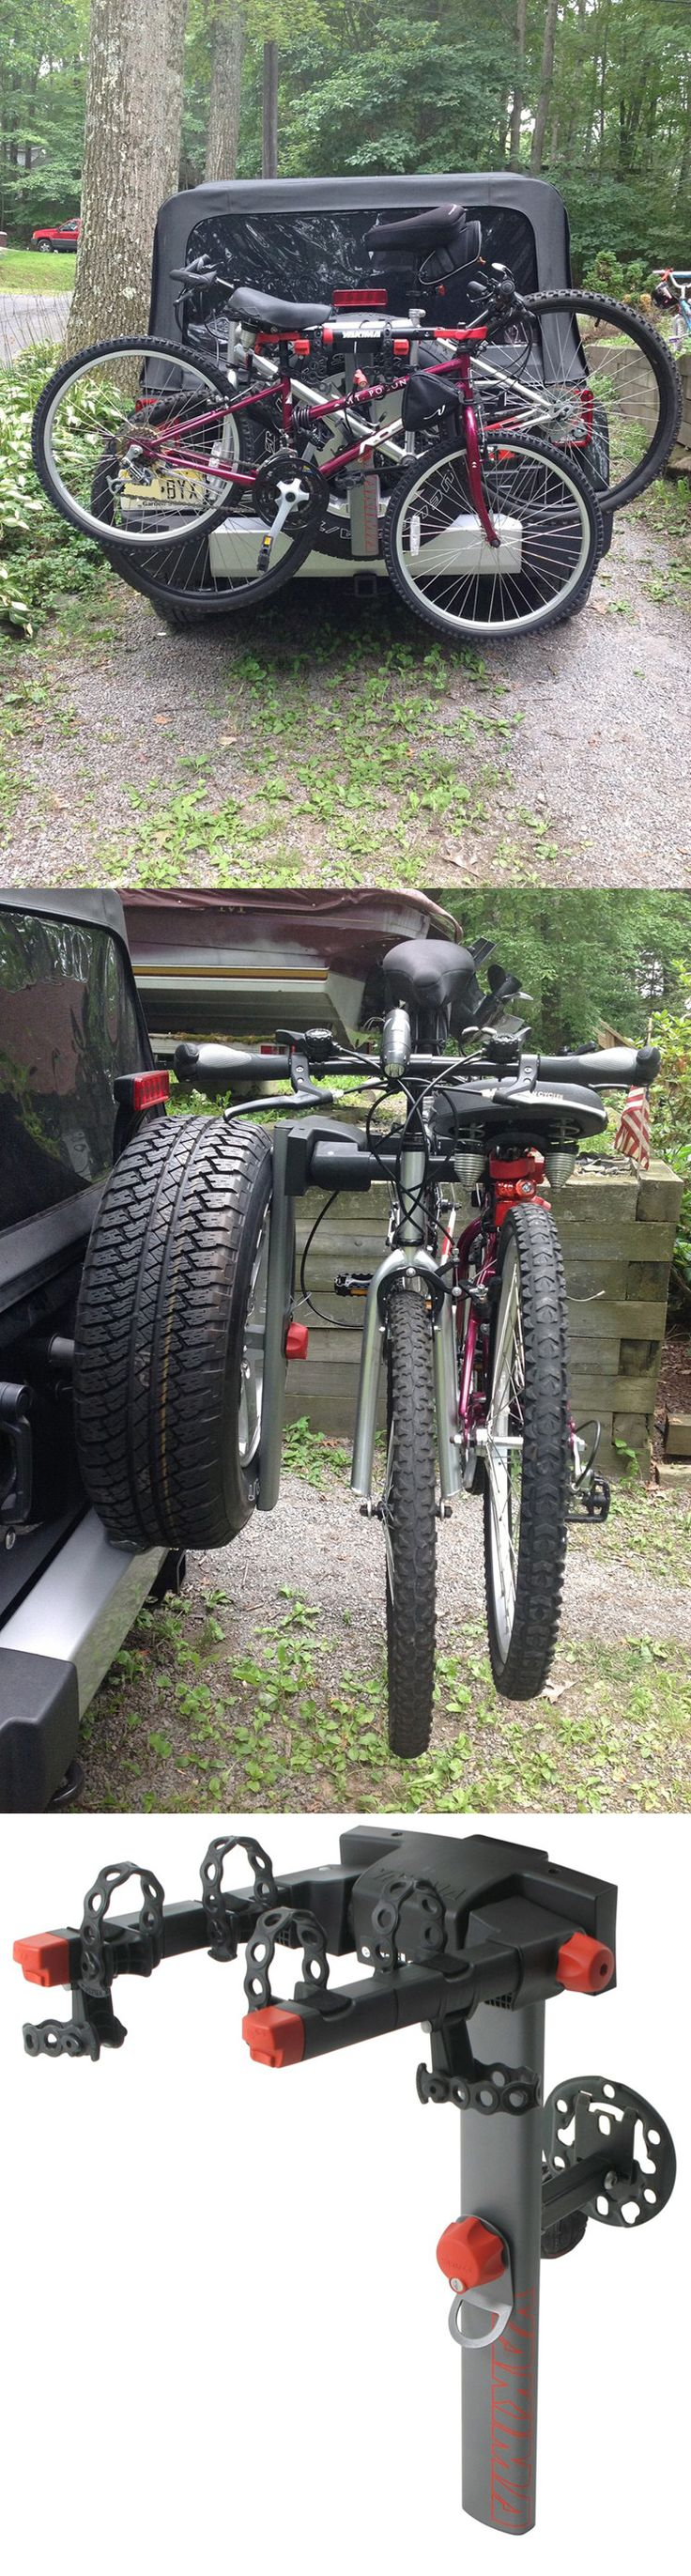 Securely mount this bike rack to the spare tire of the Jeep Wrangler. Transport 2 bikes to your biking destination with maximum bike protection and anti-sway cradles.